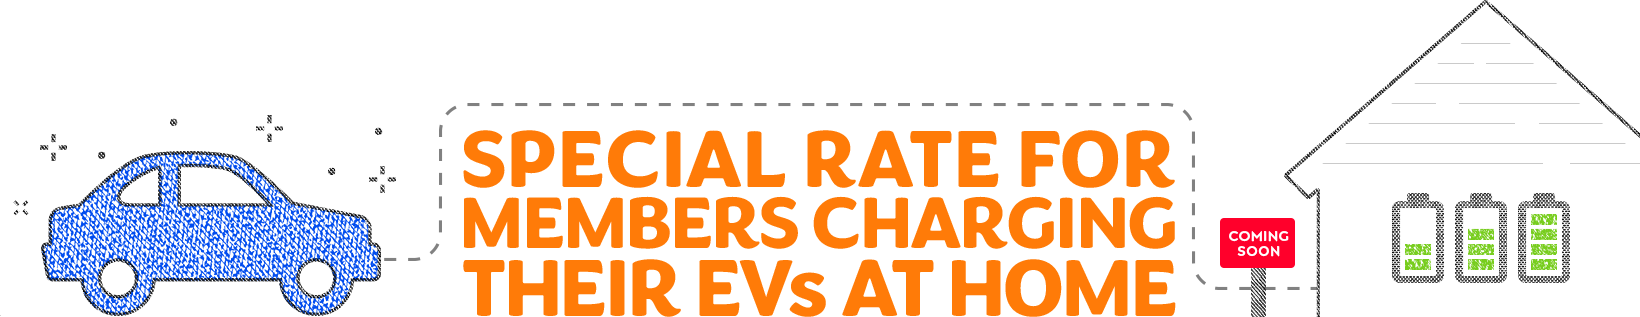 Special rate for members charging their EVs at home.